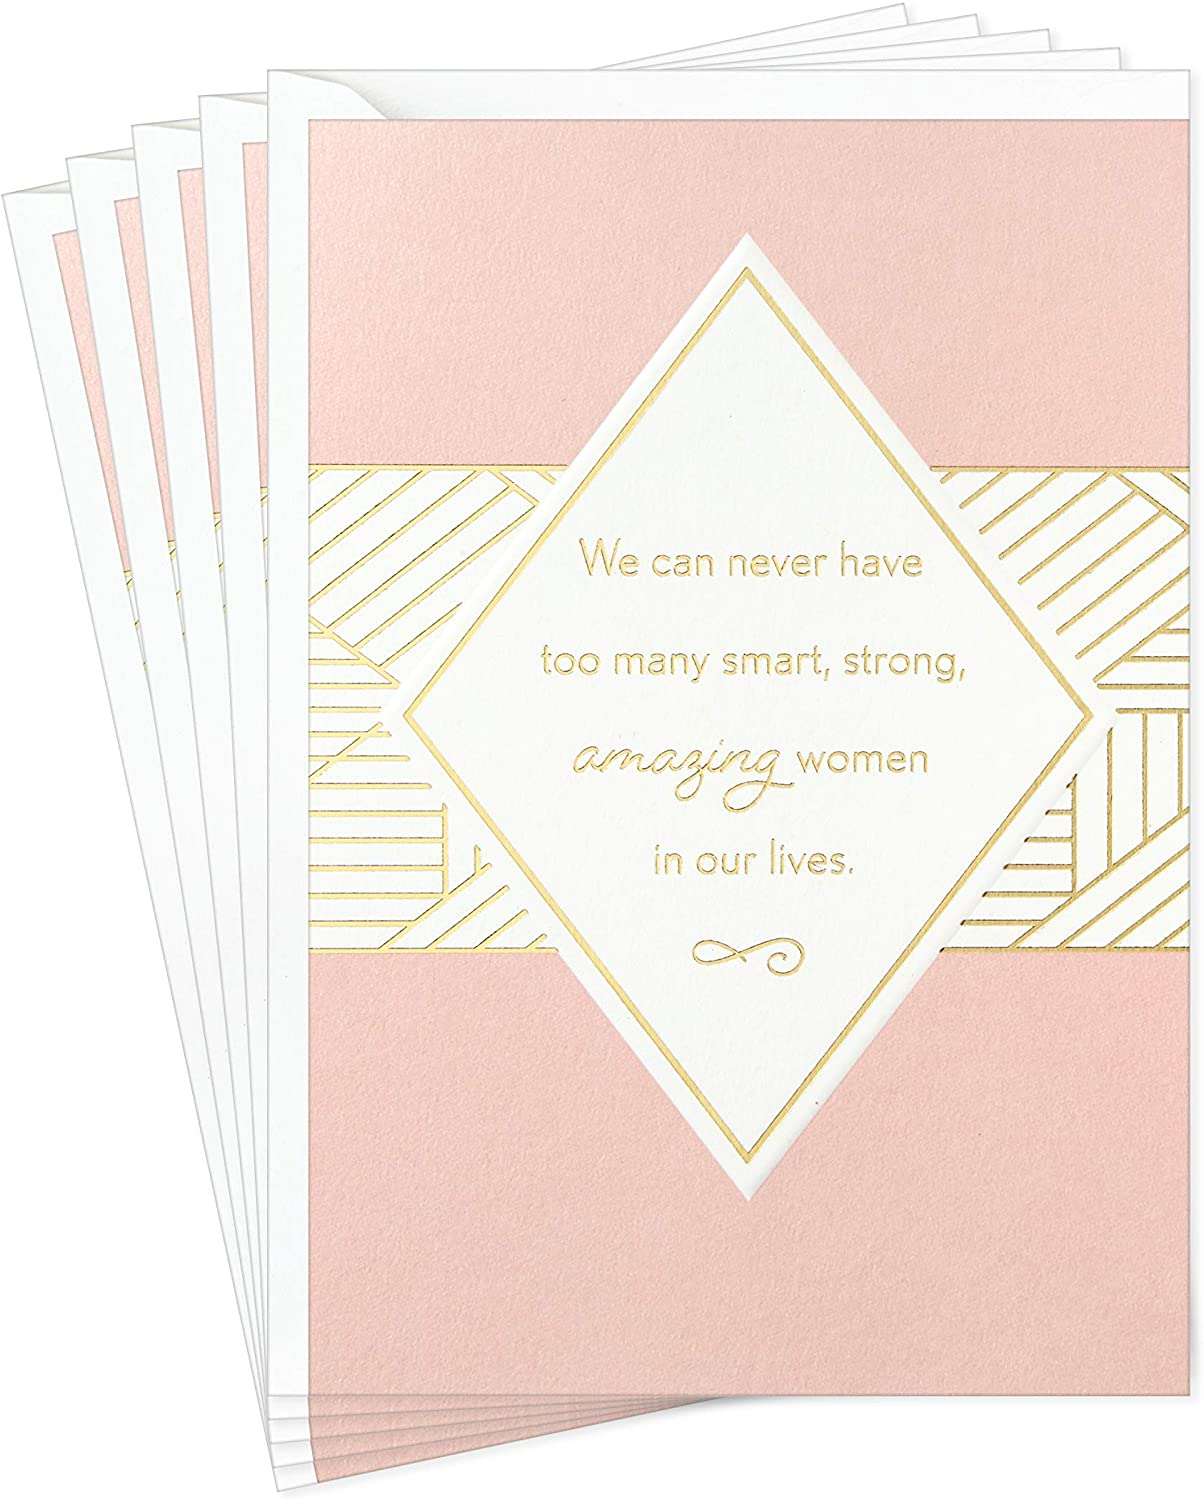 Hallmark Pack of 5 All Occasion Greeting Cards for Mother's Day, Birthdays, Thinking of You, Thank You, and More (5 Cards with Envelopes)